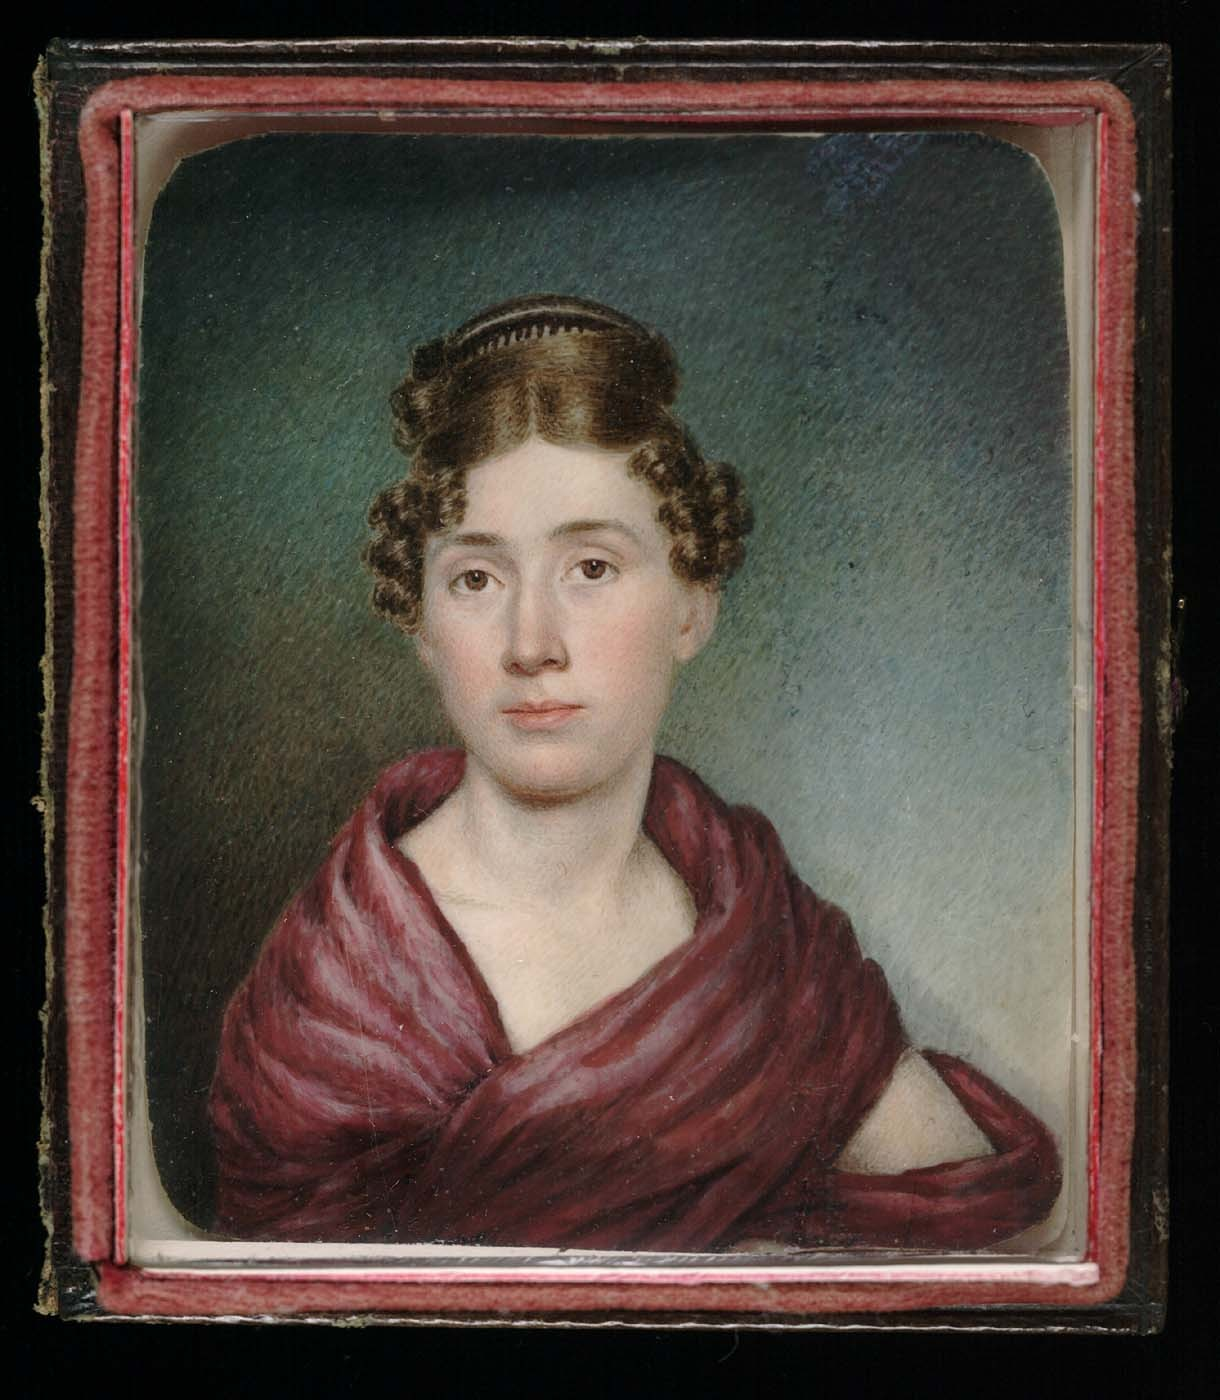 coolchicksfromhistory:  Miniature self-portrait, Sarah Goodridge, circa 1825. Smithsonian American Art Museum Sarah Goodridge was a leading painter of miniatures in pre-Civil War Boston.  An unusually successful female artist for the times, Sarah was able to support her family through her artwork.  She received commissions from notable figures such as Daniel Webster and Gilbert Stuart.  Her work was exhibited at the annual exhibitions of the Boston Athenaeum between 1827 and 1835.